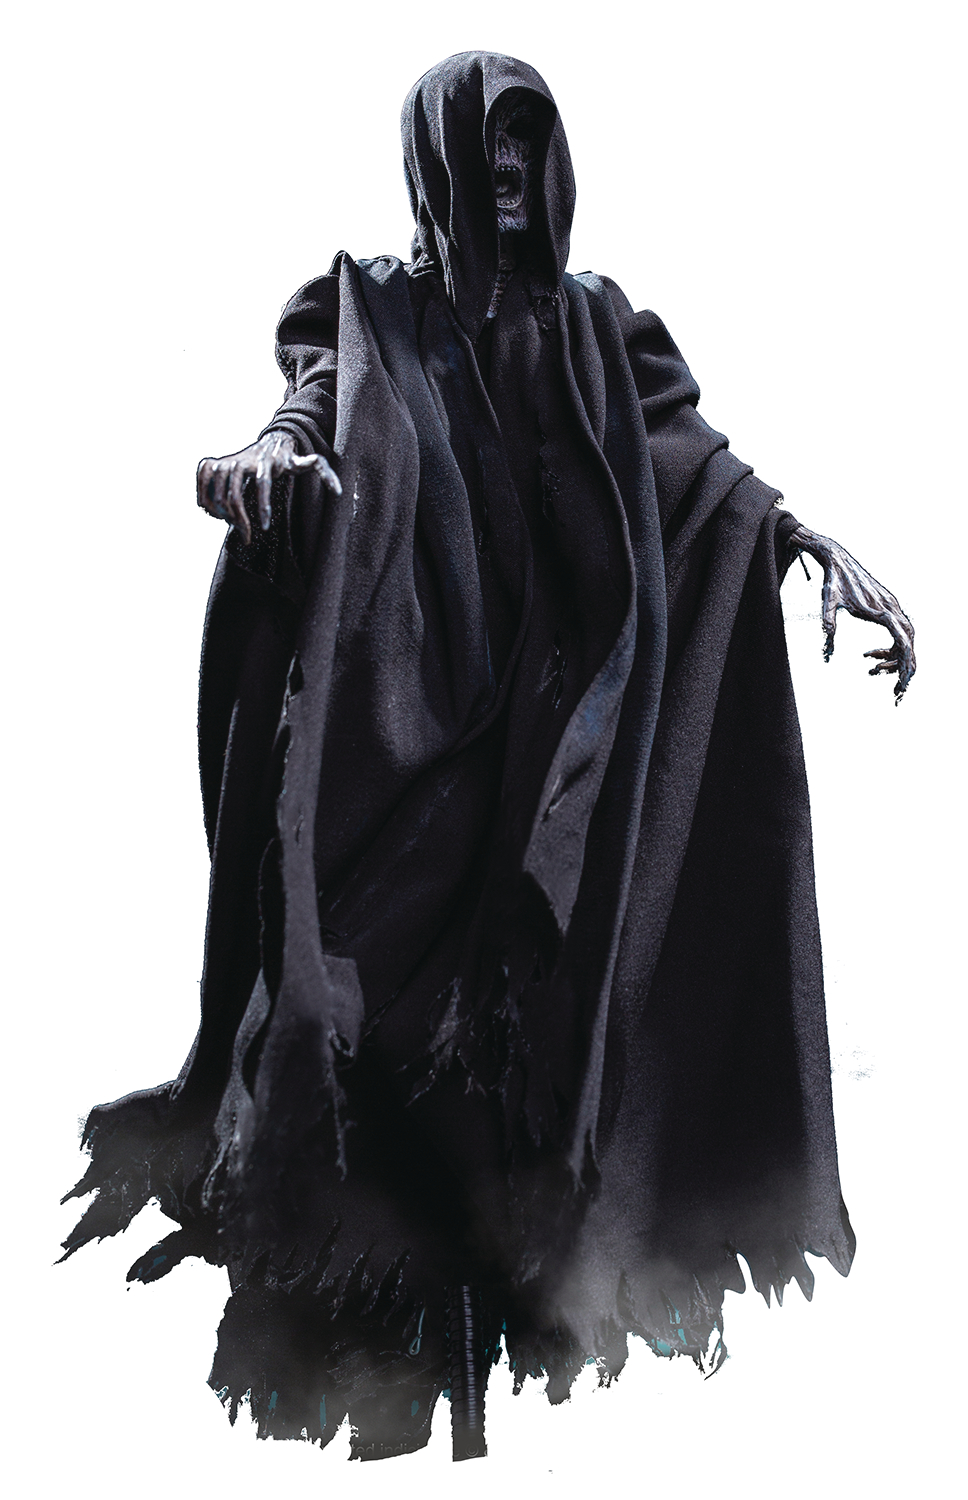 HP & THE GOBLET OF FIRE DEMENTOR 1/8 COLL AF DLX VER  (